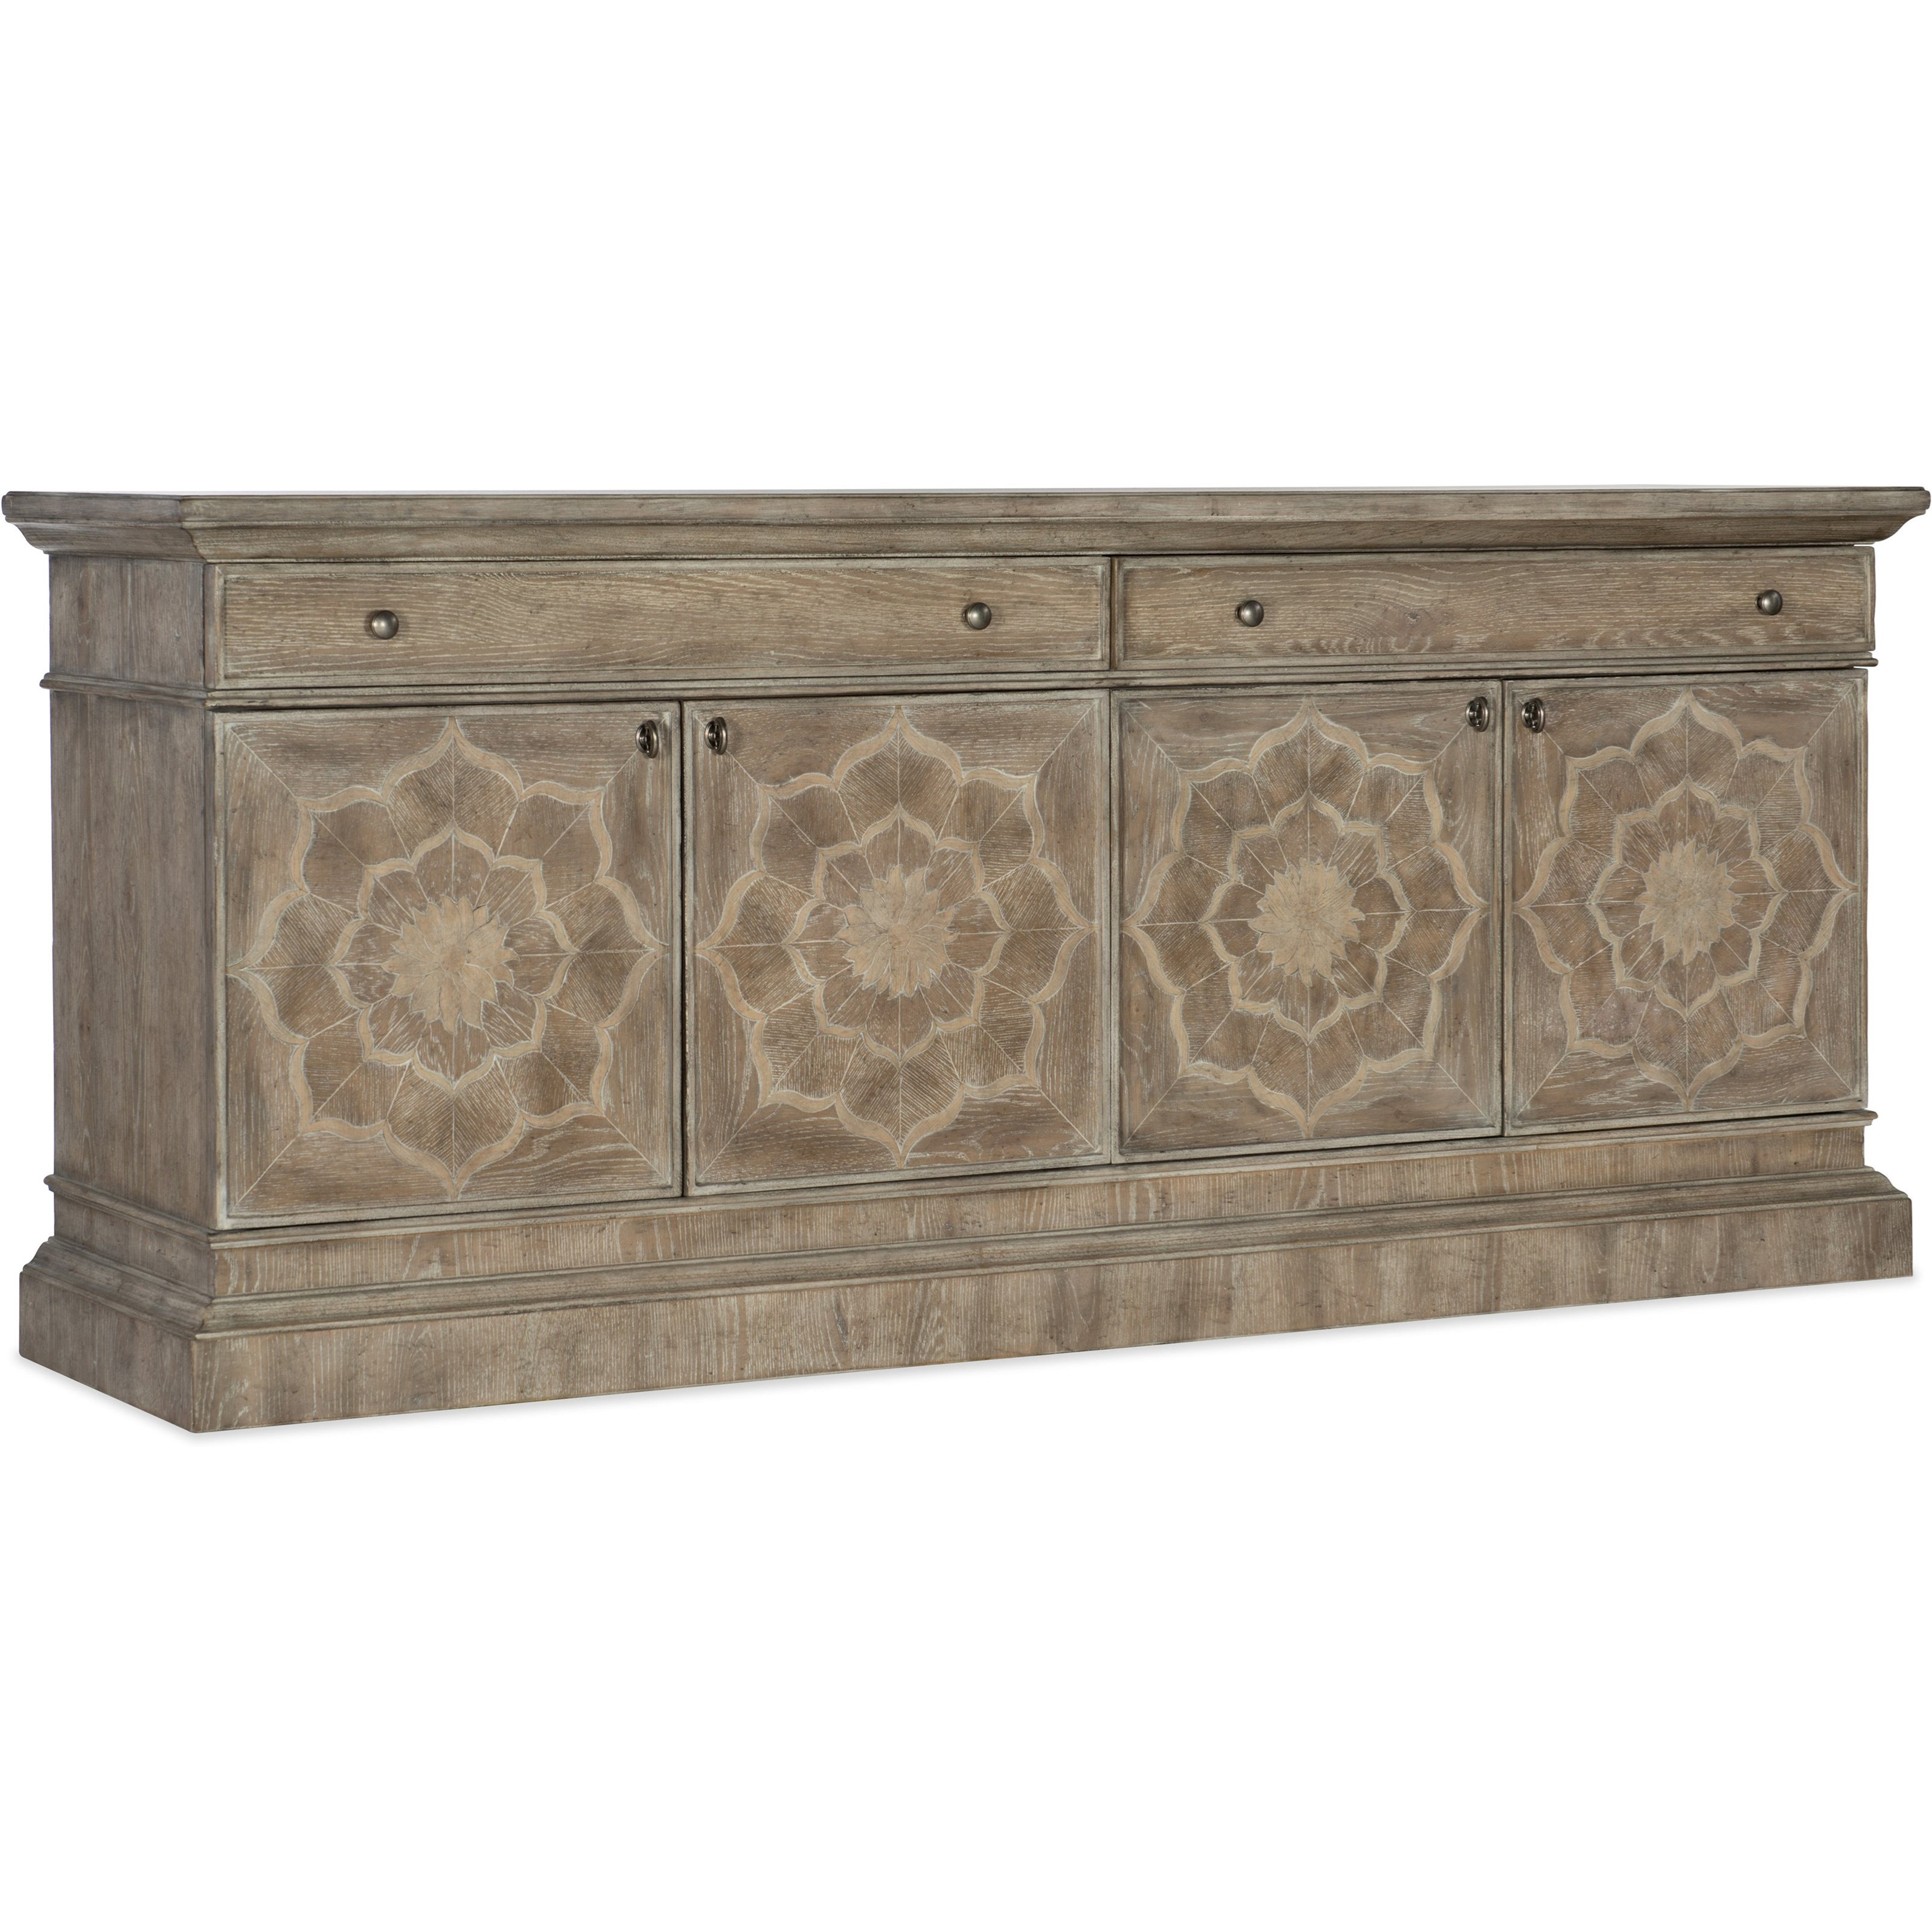 Dahlia Entertainment Console by Hooker Furniture at Baer's Furniture